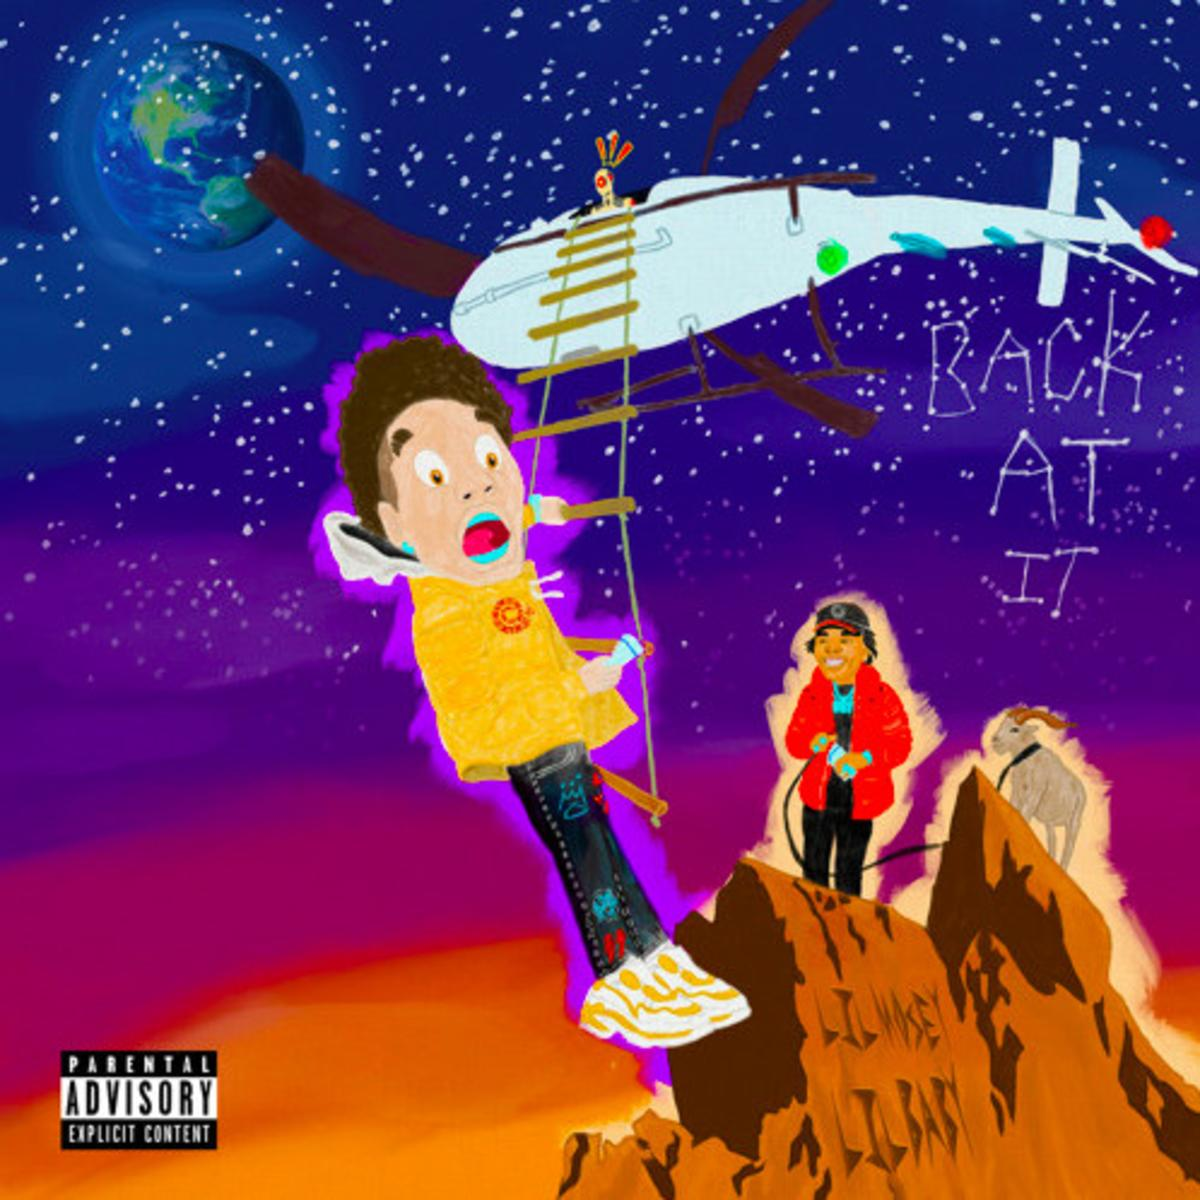 Back at It – [Lil Mosey] ft. [Lil Baby]